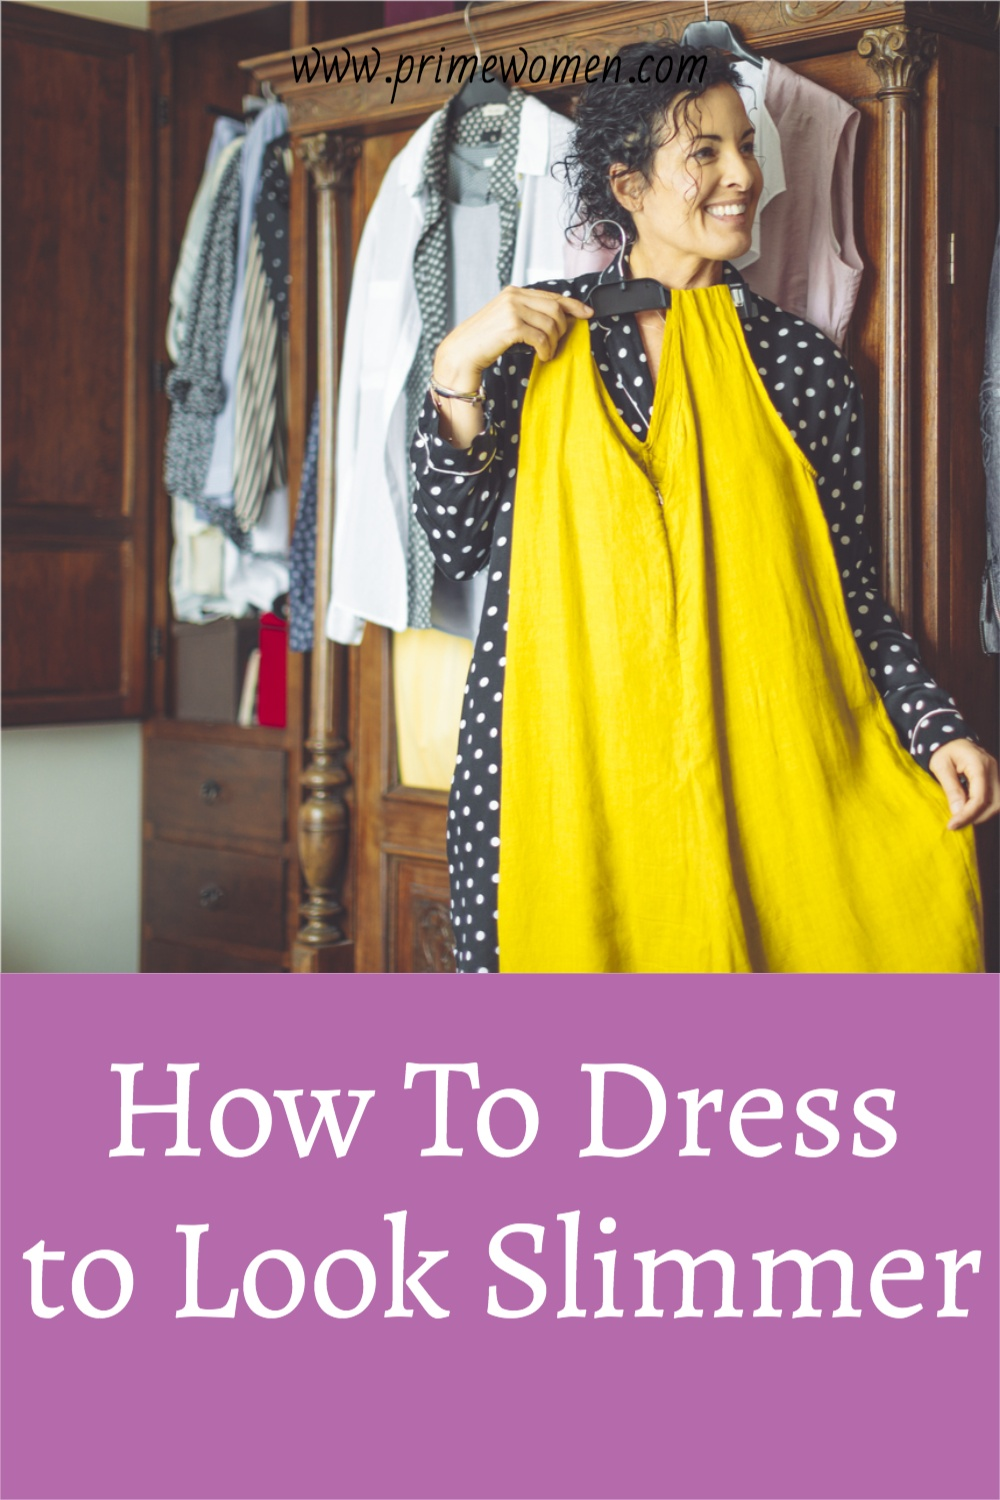 How-To-Dress to Look-Slimmer